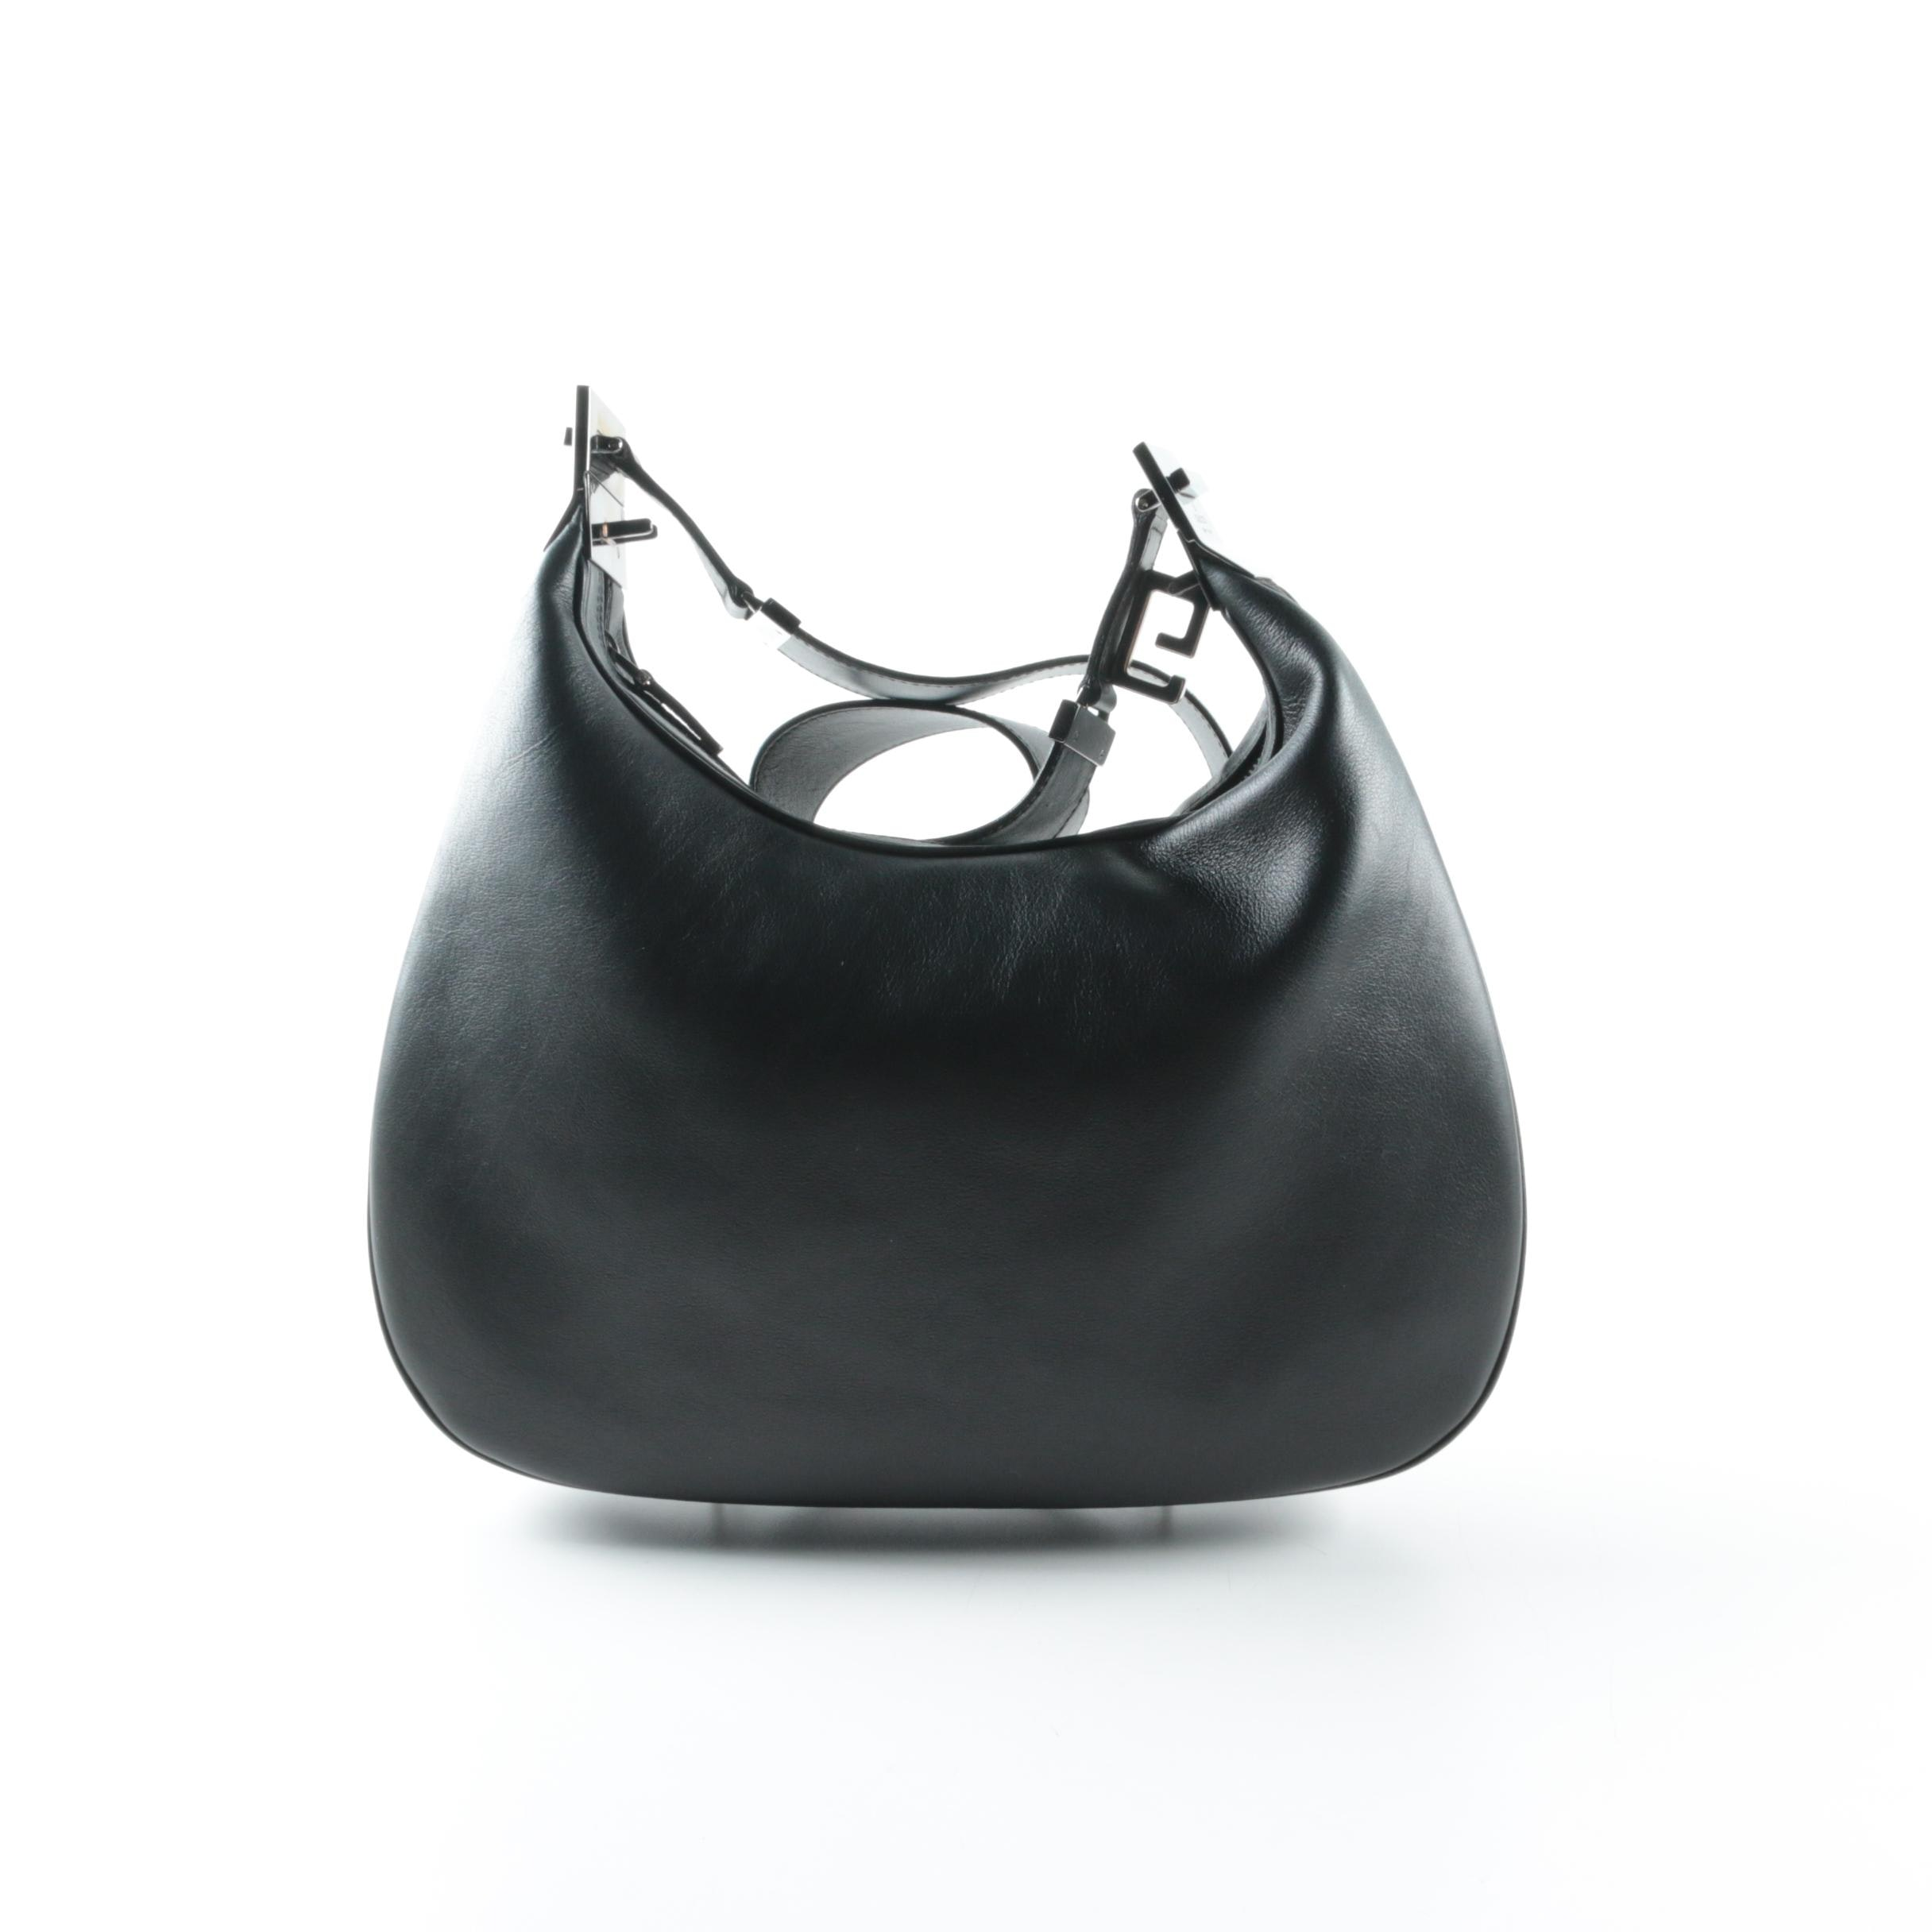 Gucci Black Leather Hobo Handbag